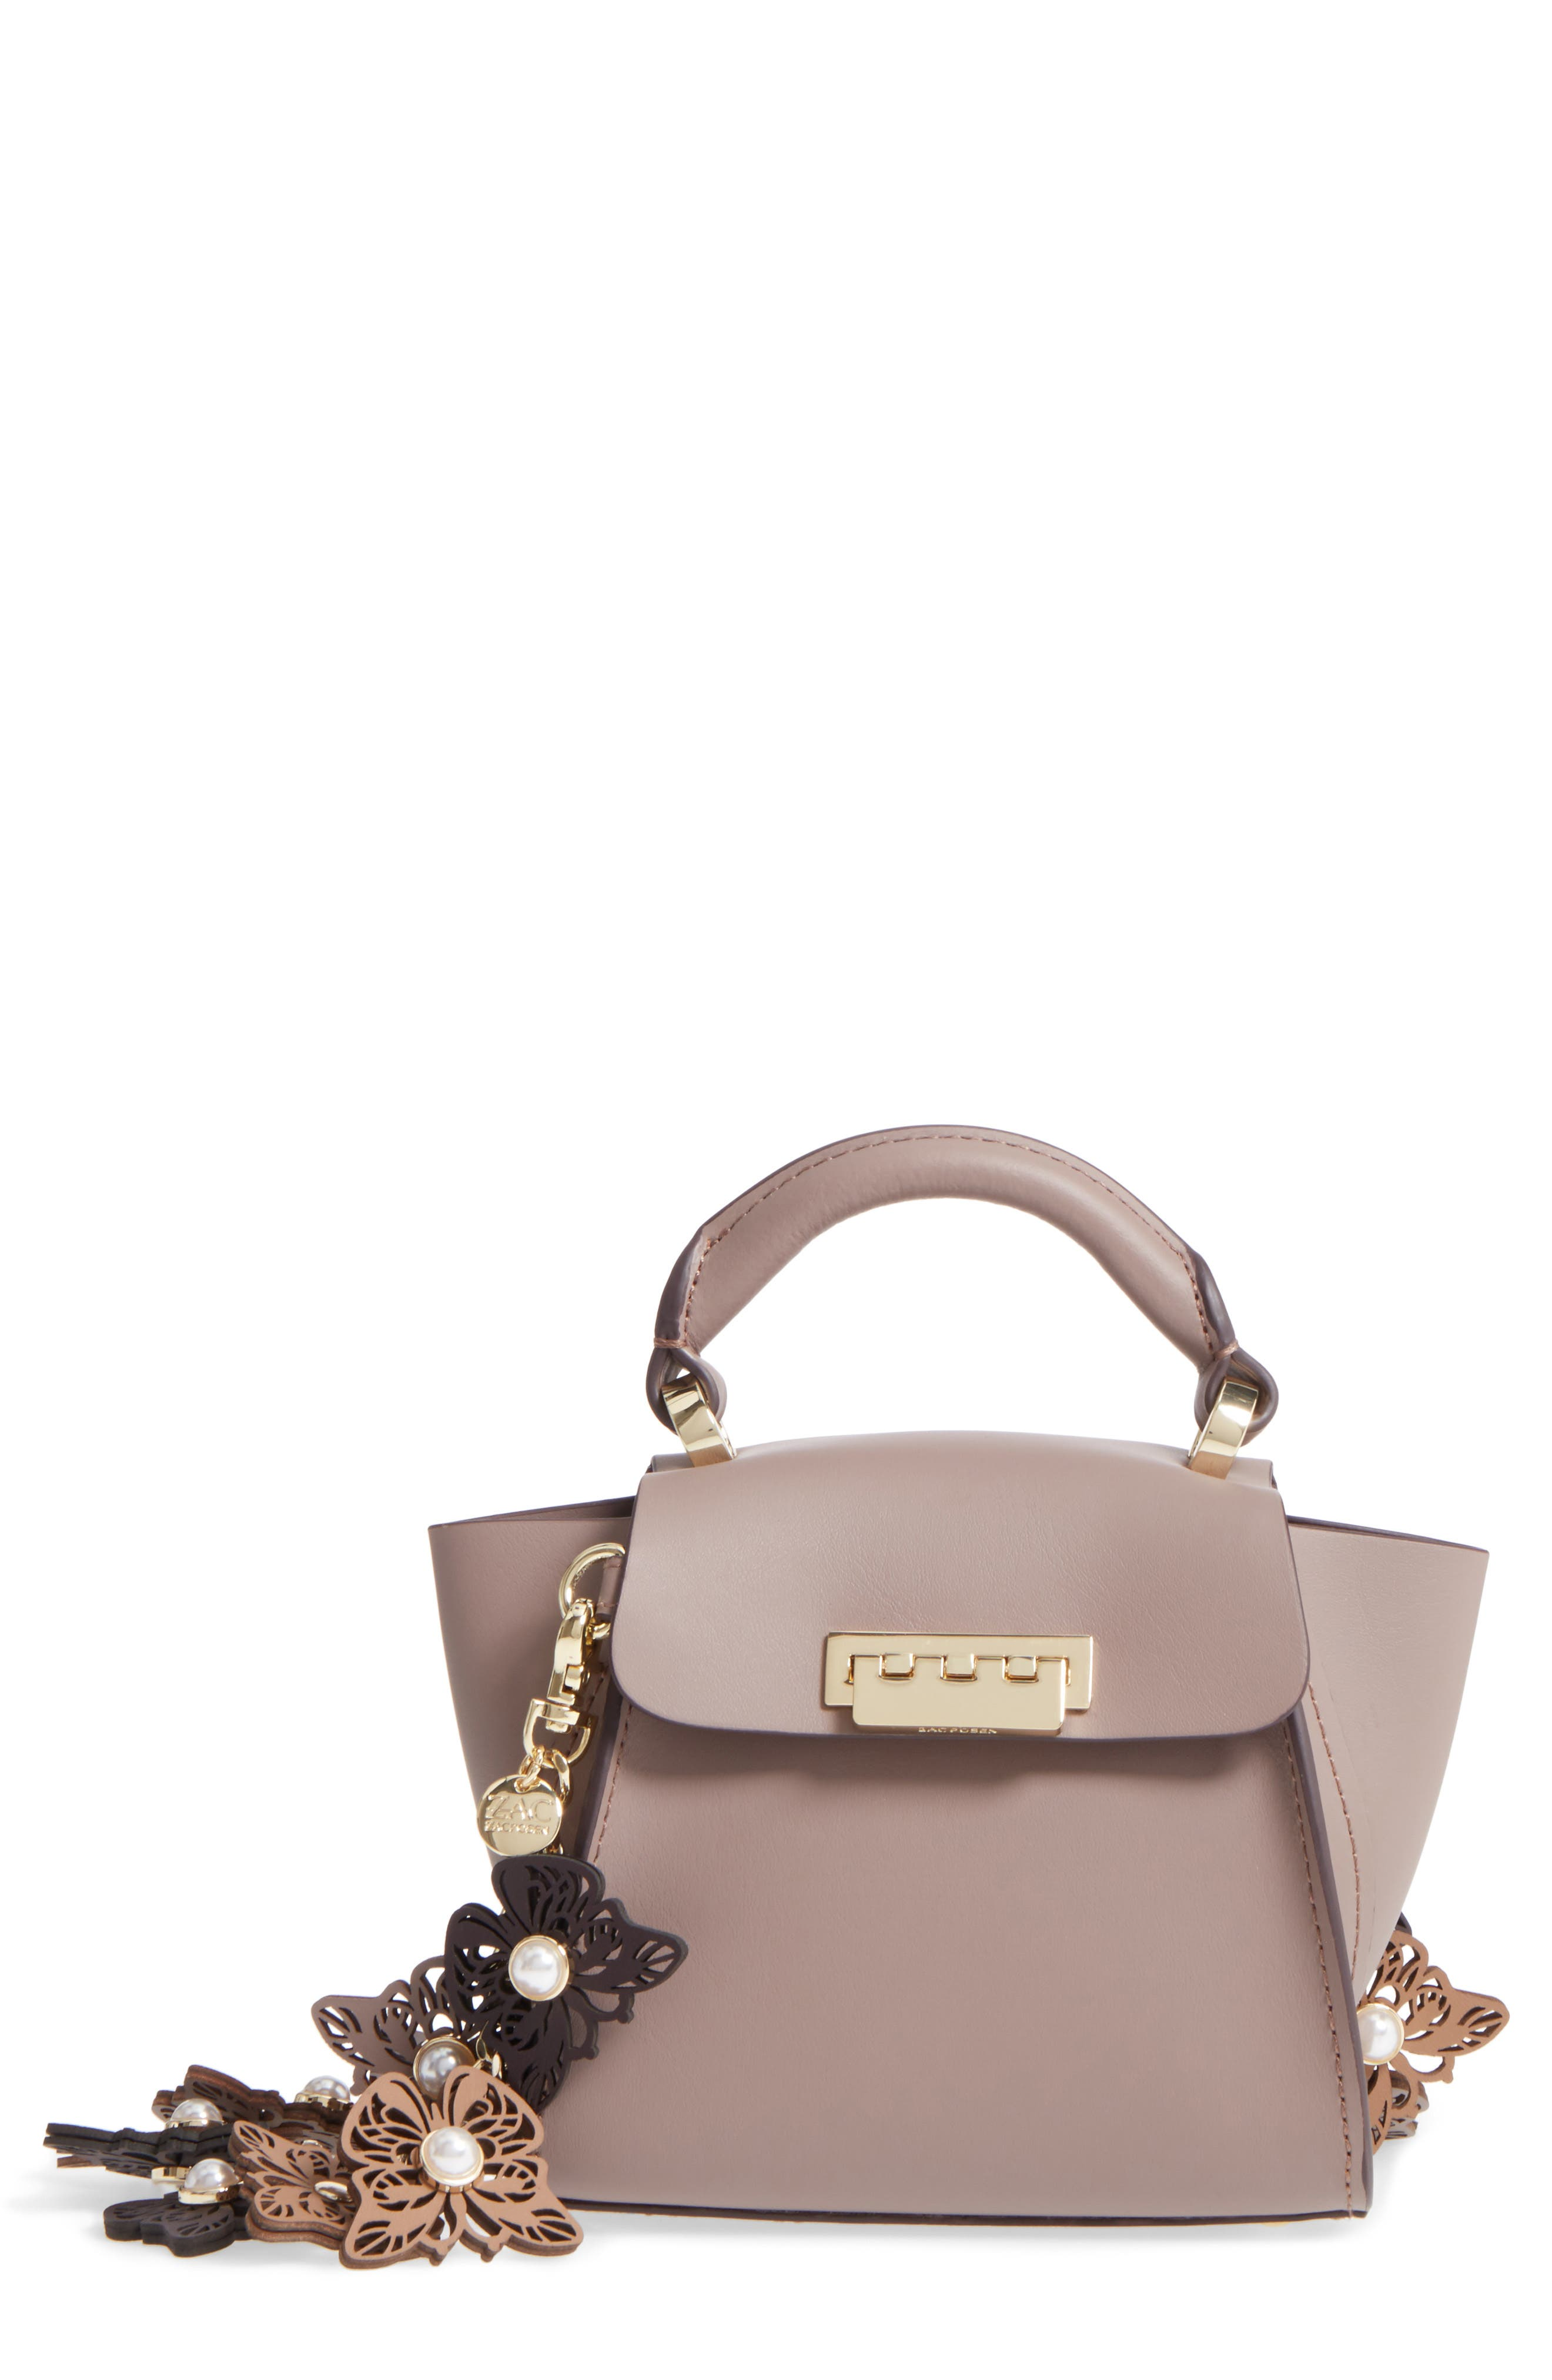 ZAC Zac Posen Eartha Iconic Calfskin Leather Satchel with Novelty Strap